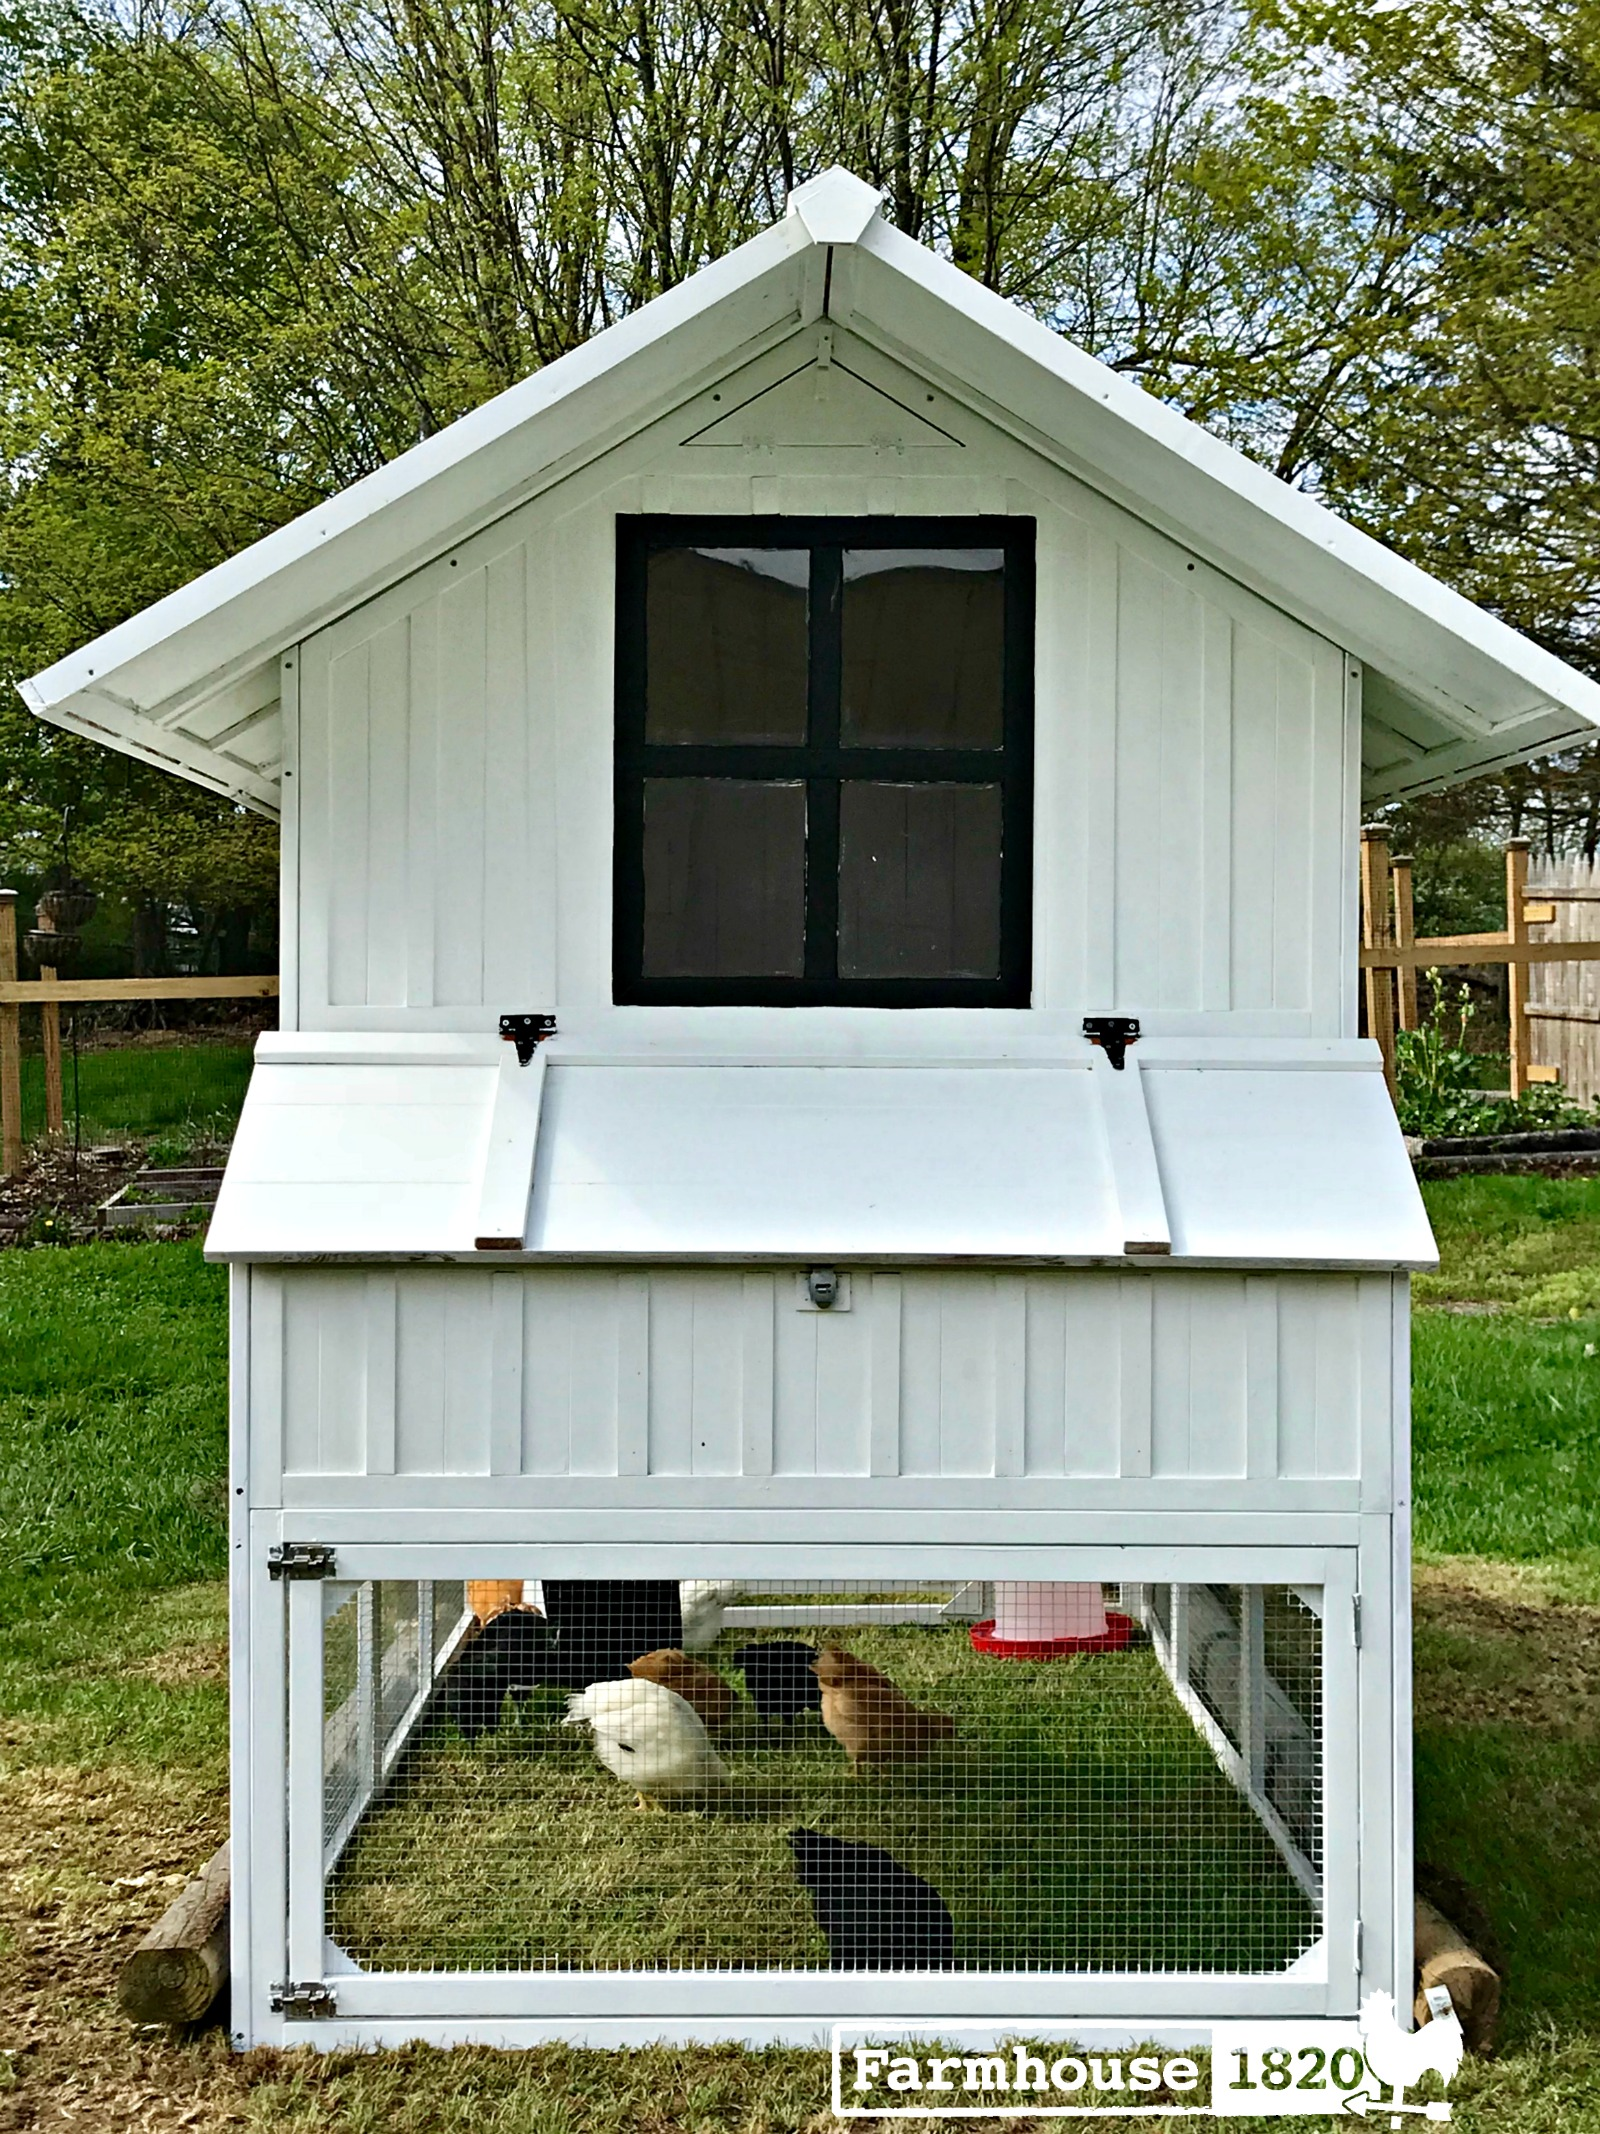 chicken coop - the back of the coop